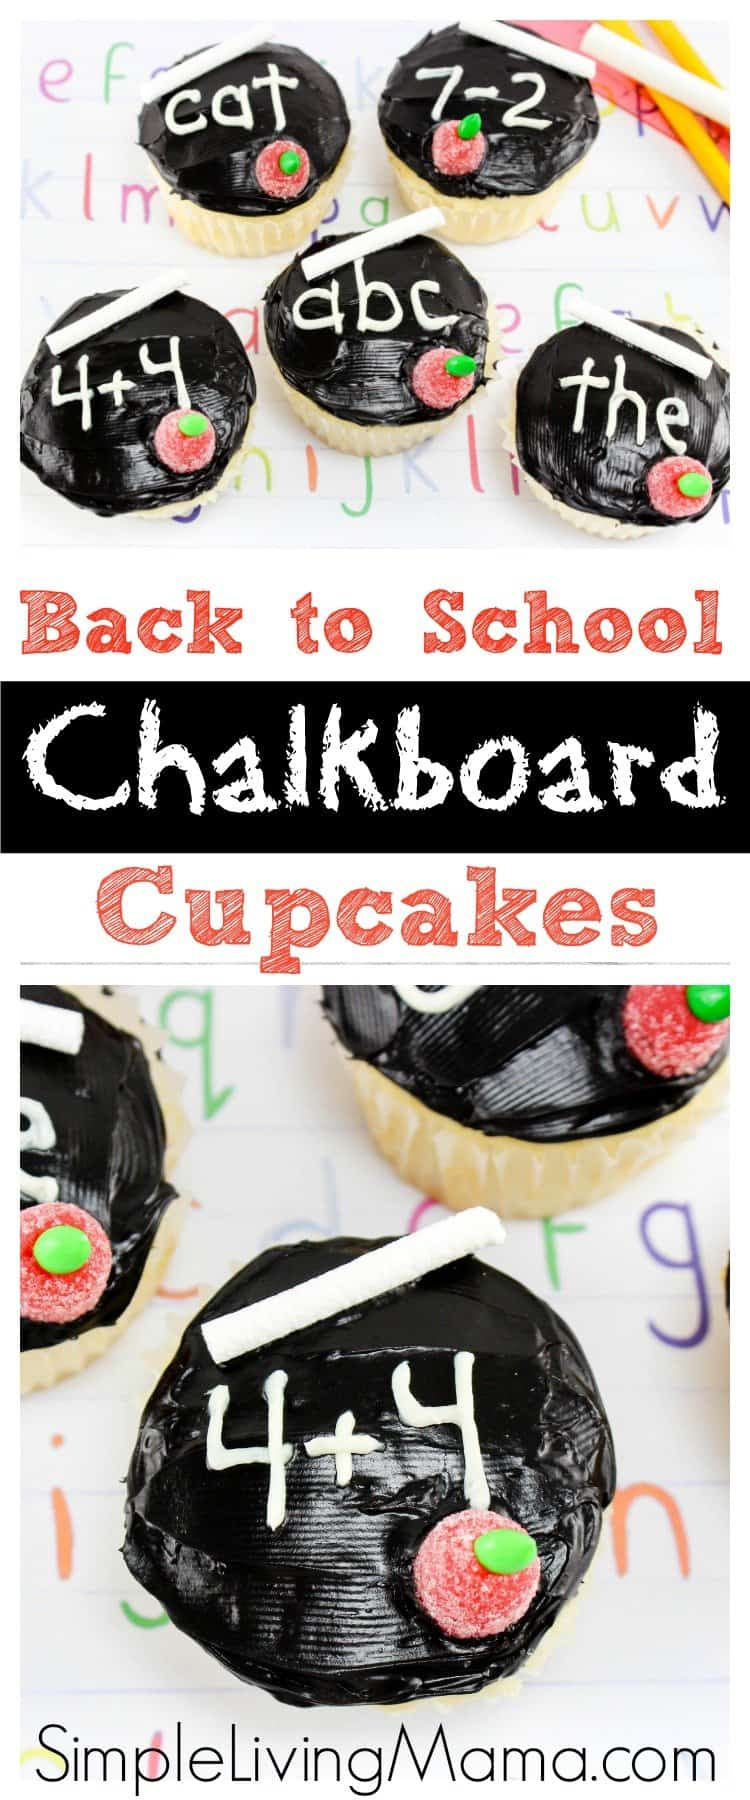 These back to school chalkboard cupcakes are the perfect treat for your kids' first day of school!